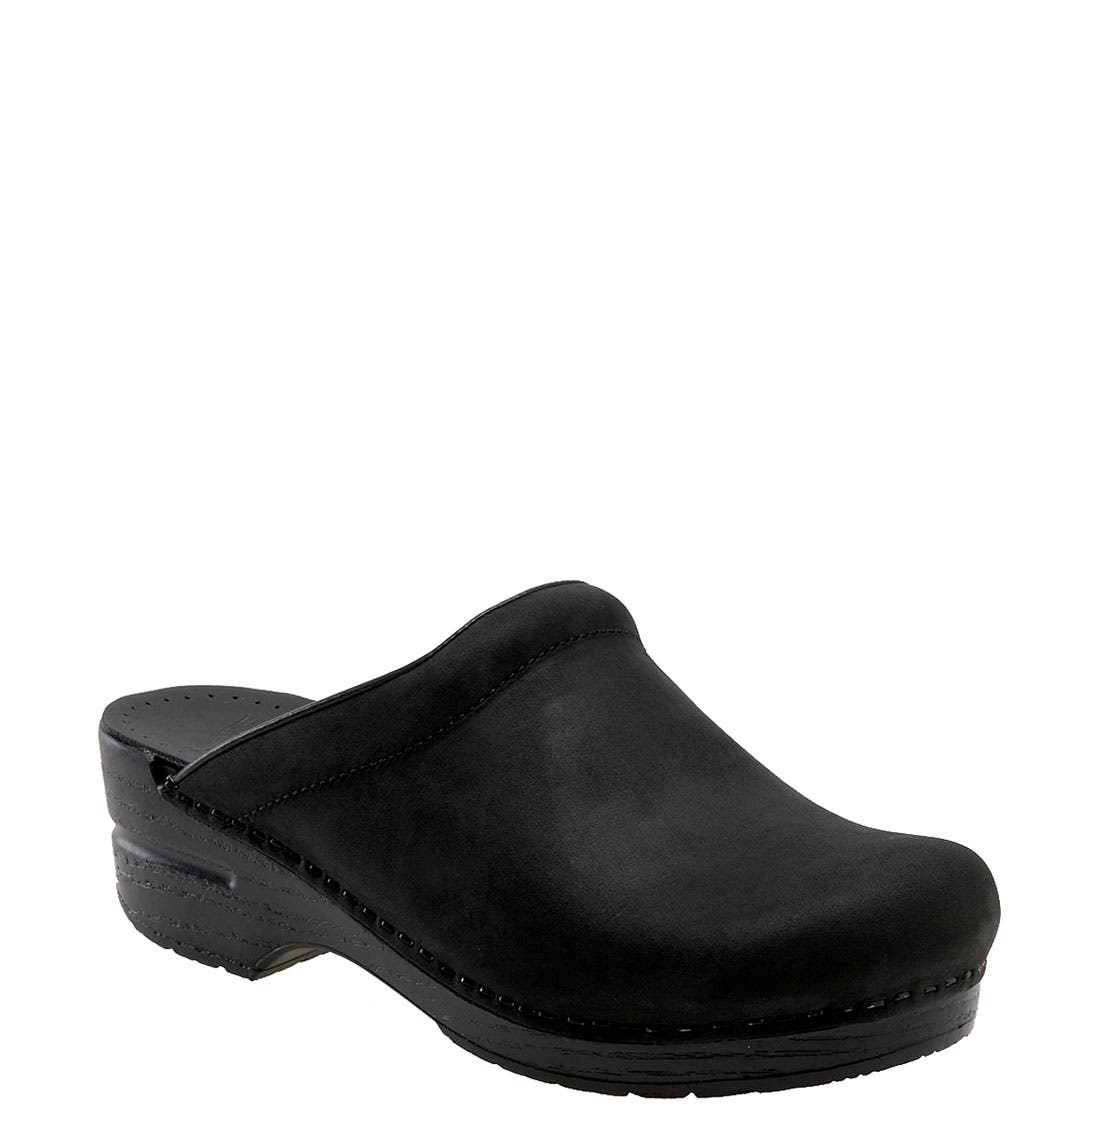 'Sonja' Oiled Leather Clog,                             Main thumbnail 1, color,                             BLACK OILED